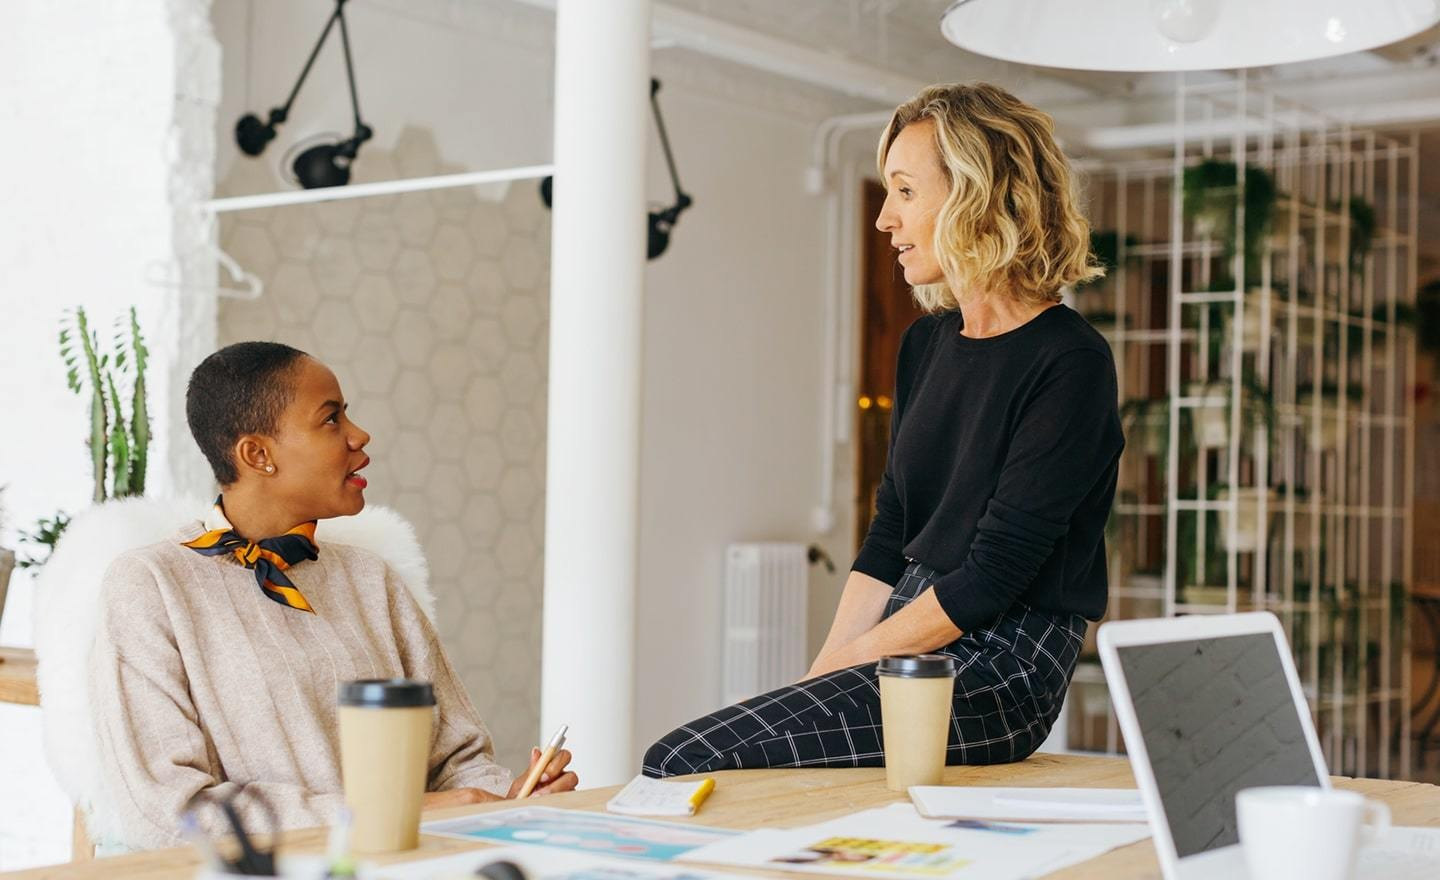 Two women coworkers in conversation at a desk